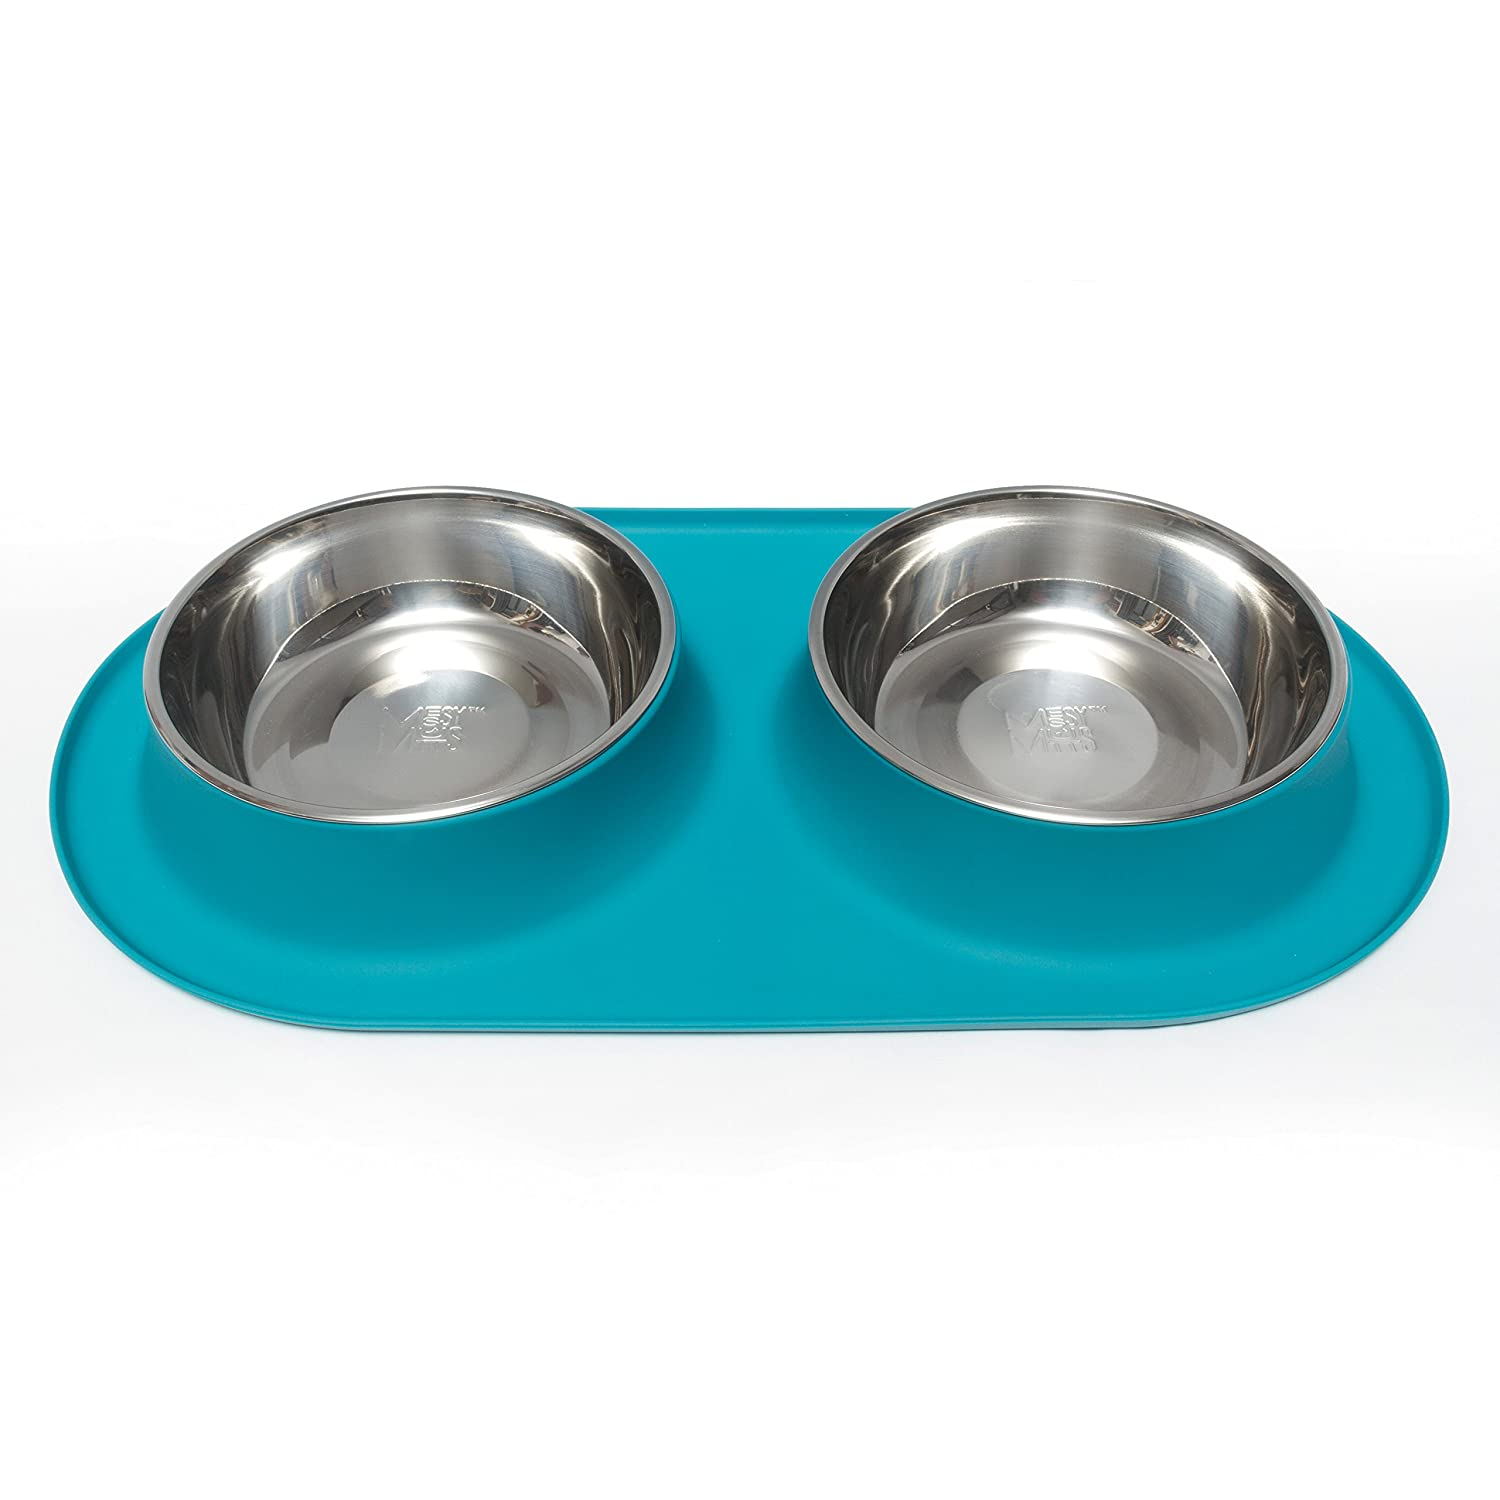 bluee Extra Large   6 Cups Per Bowl bluee Extra Large   6 Cups Per Bowl Messy Mutts Stainless Steel Double Dog Feeder with Non-Slip Silicone Base